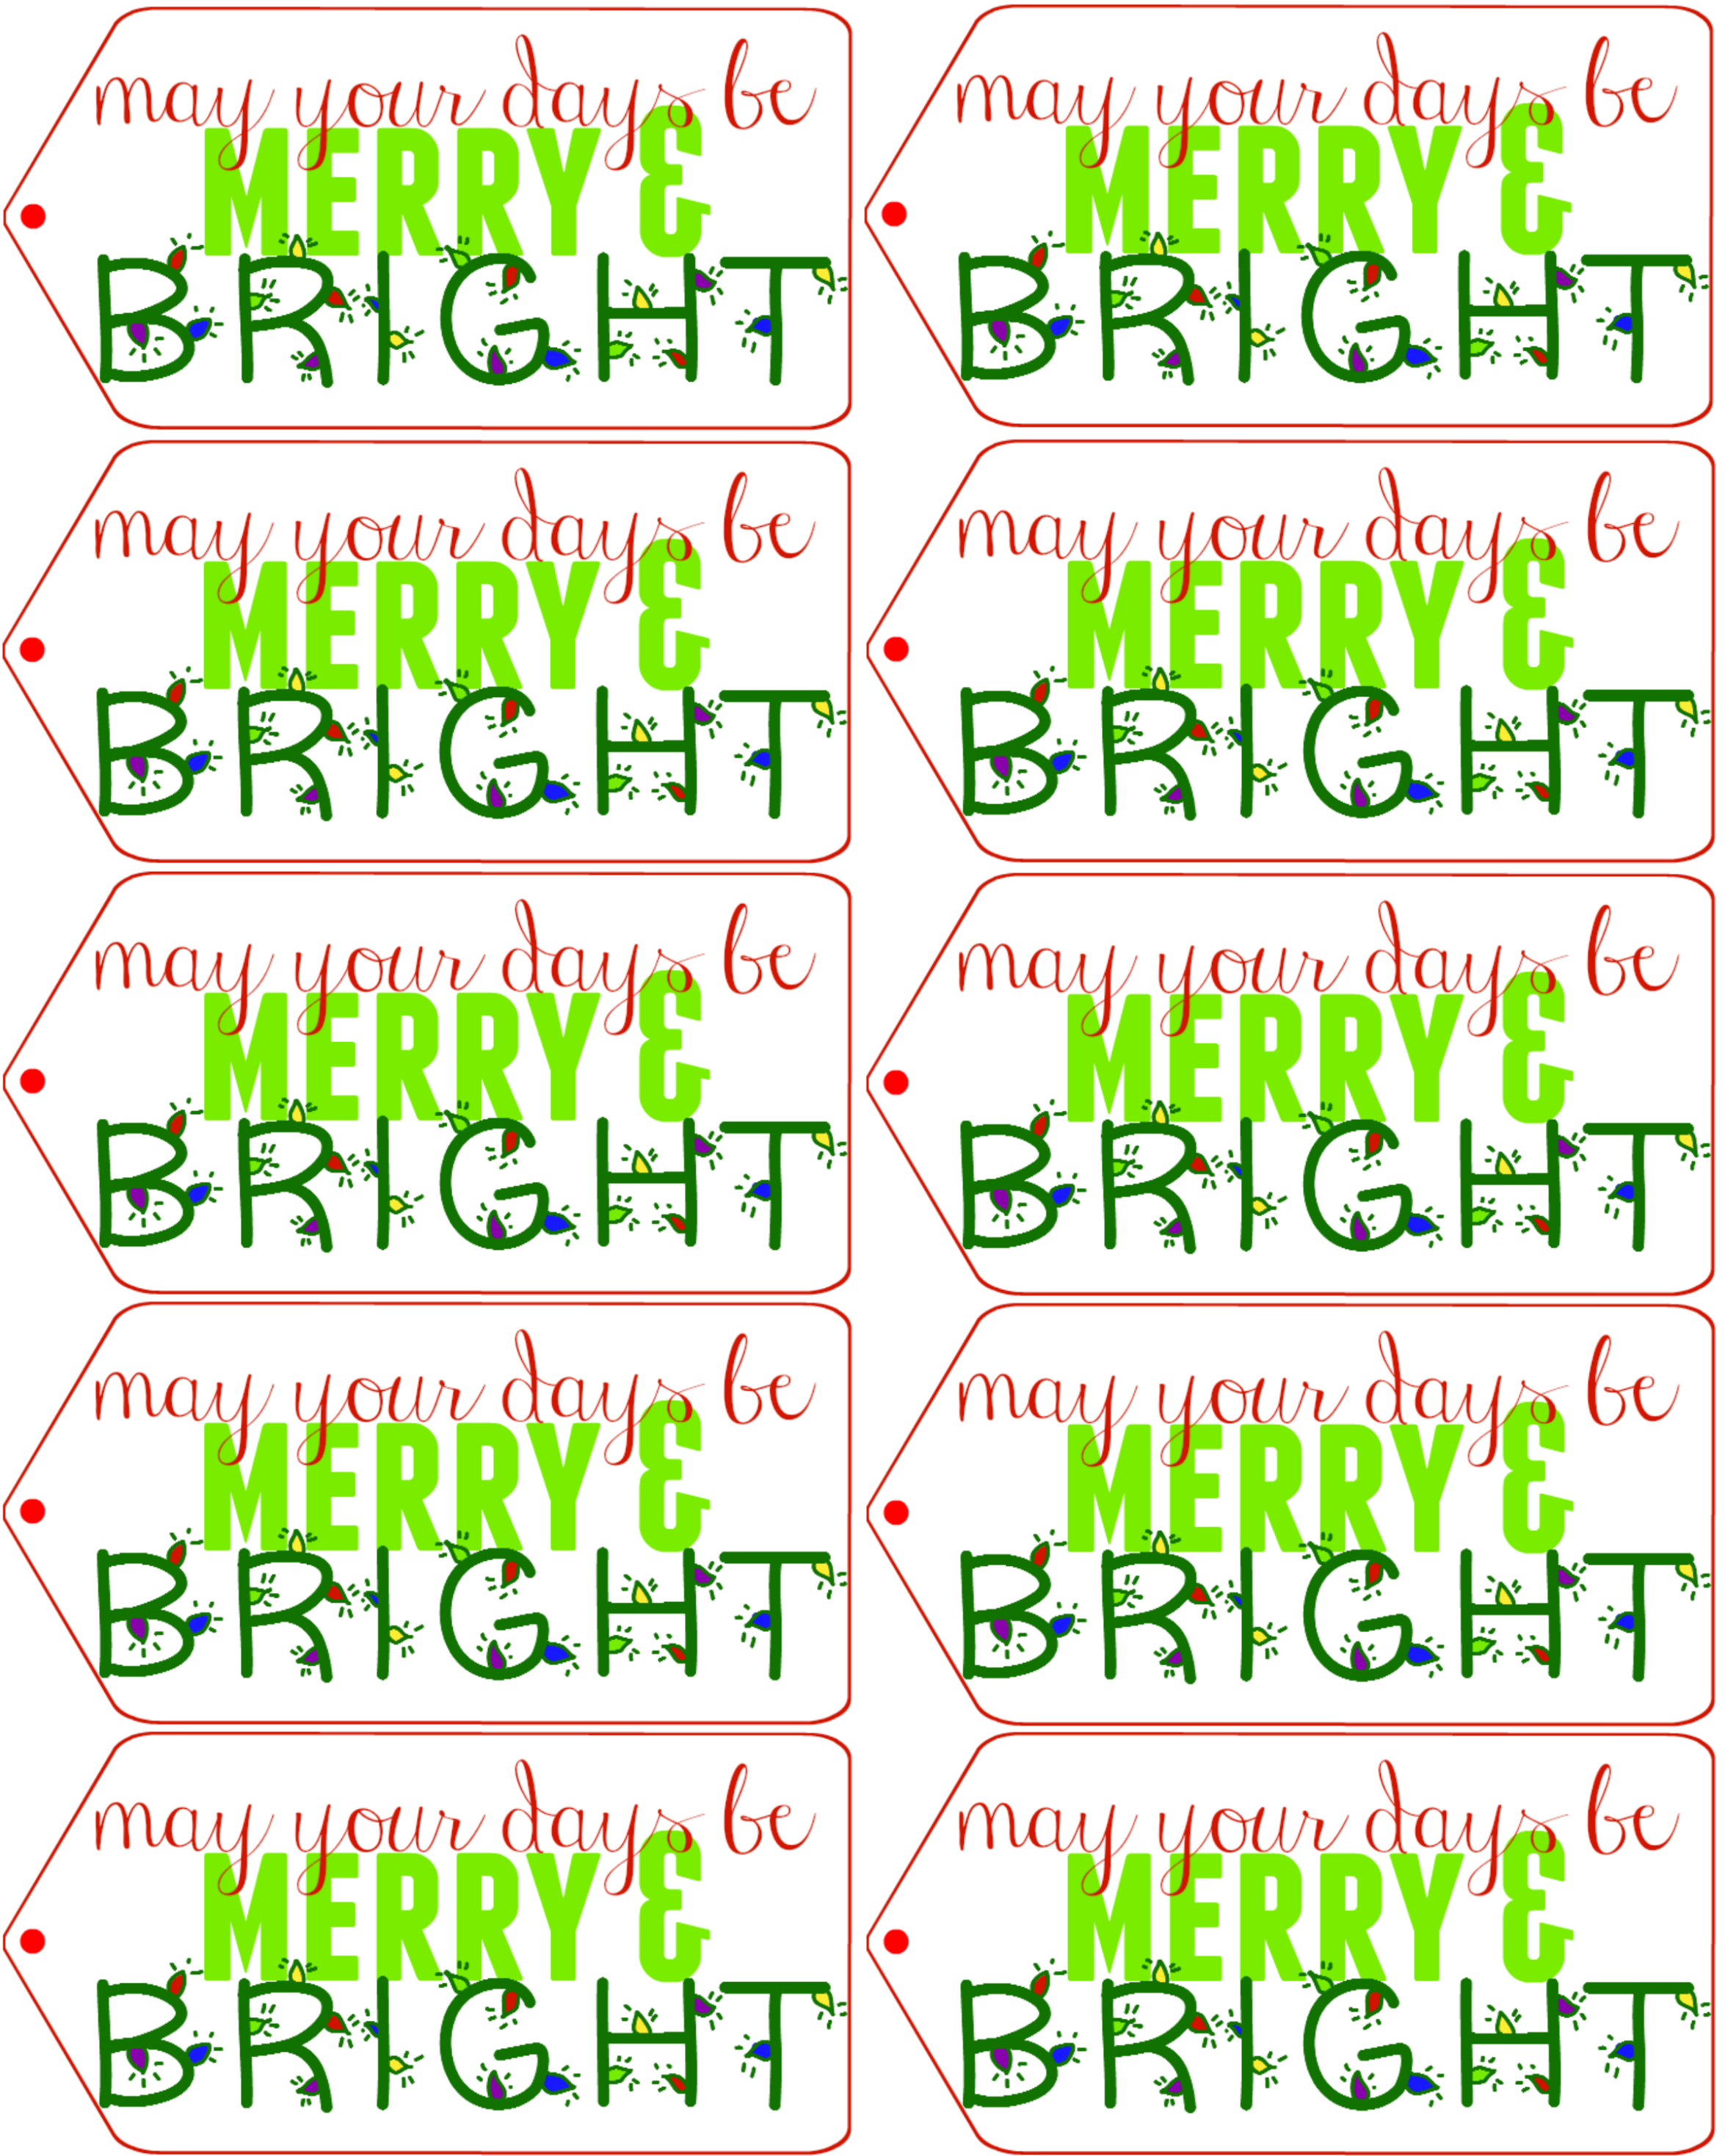 """May your days be merry & bright"" Free holiday gift tag printable! - ThisSillyGirlsLife.com #TasteTheSeason #ad"